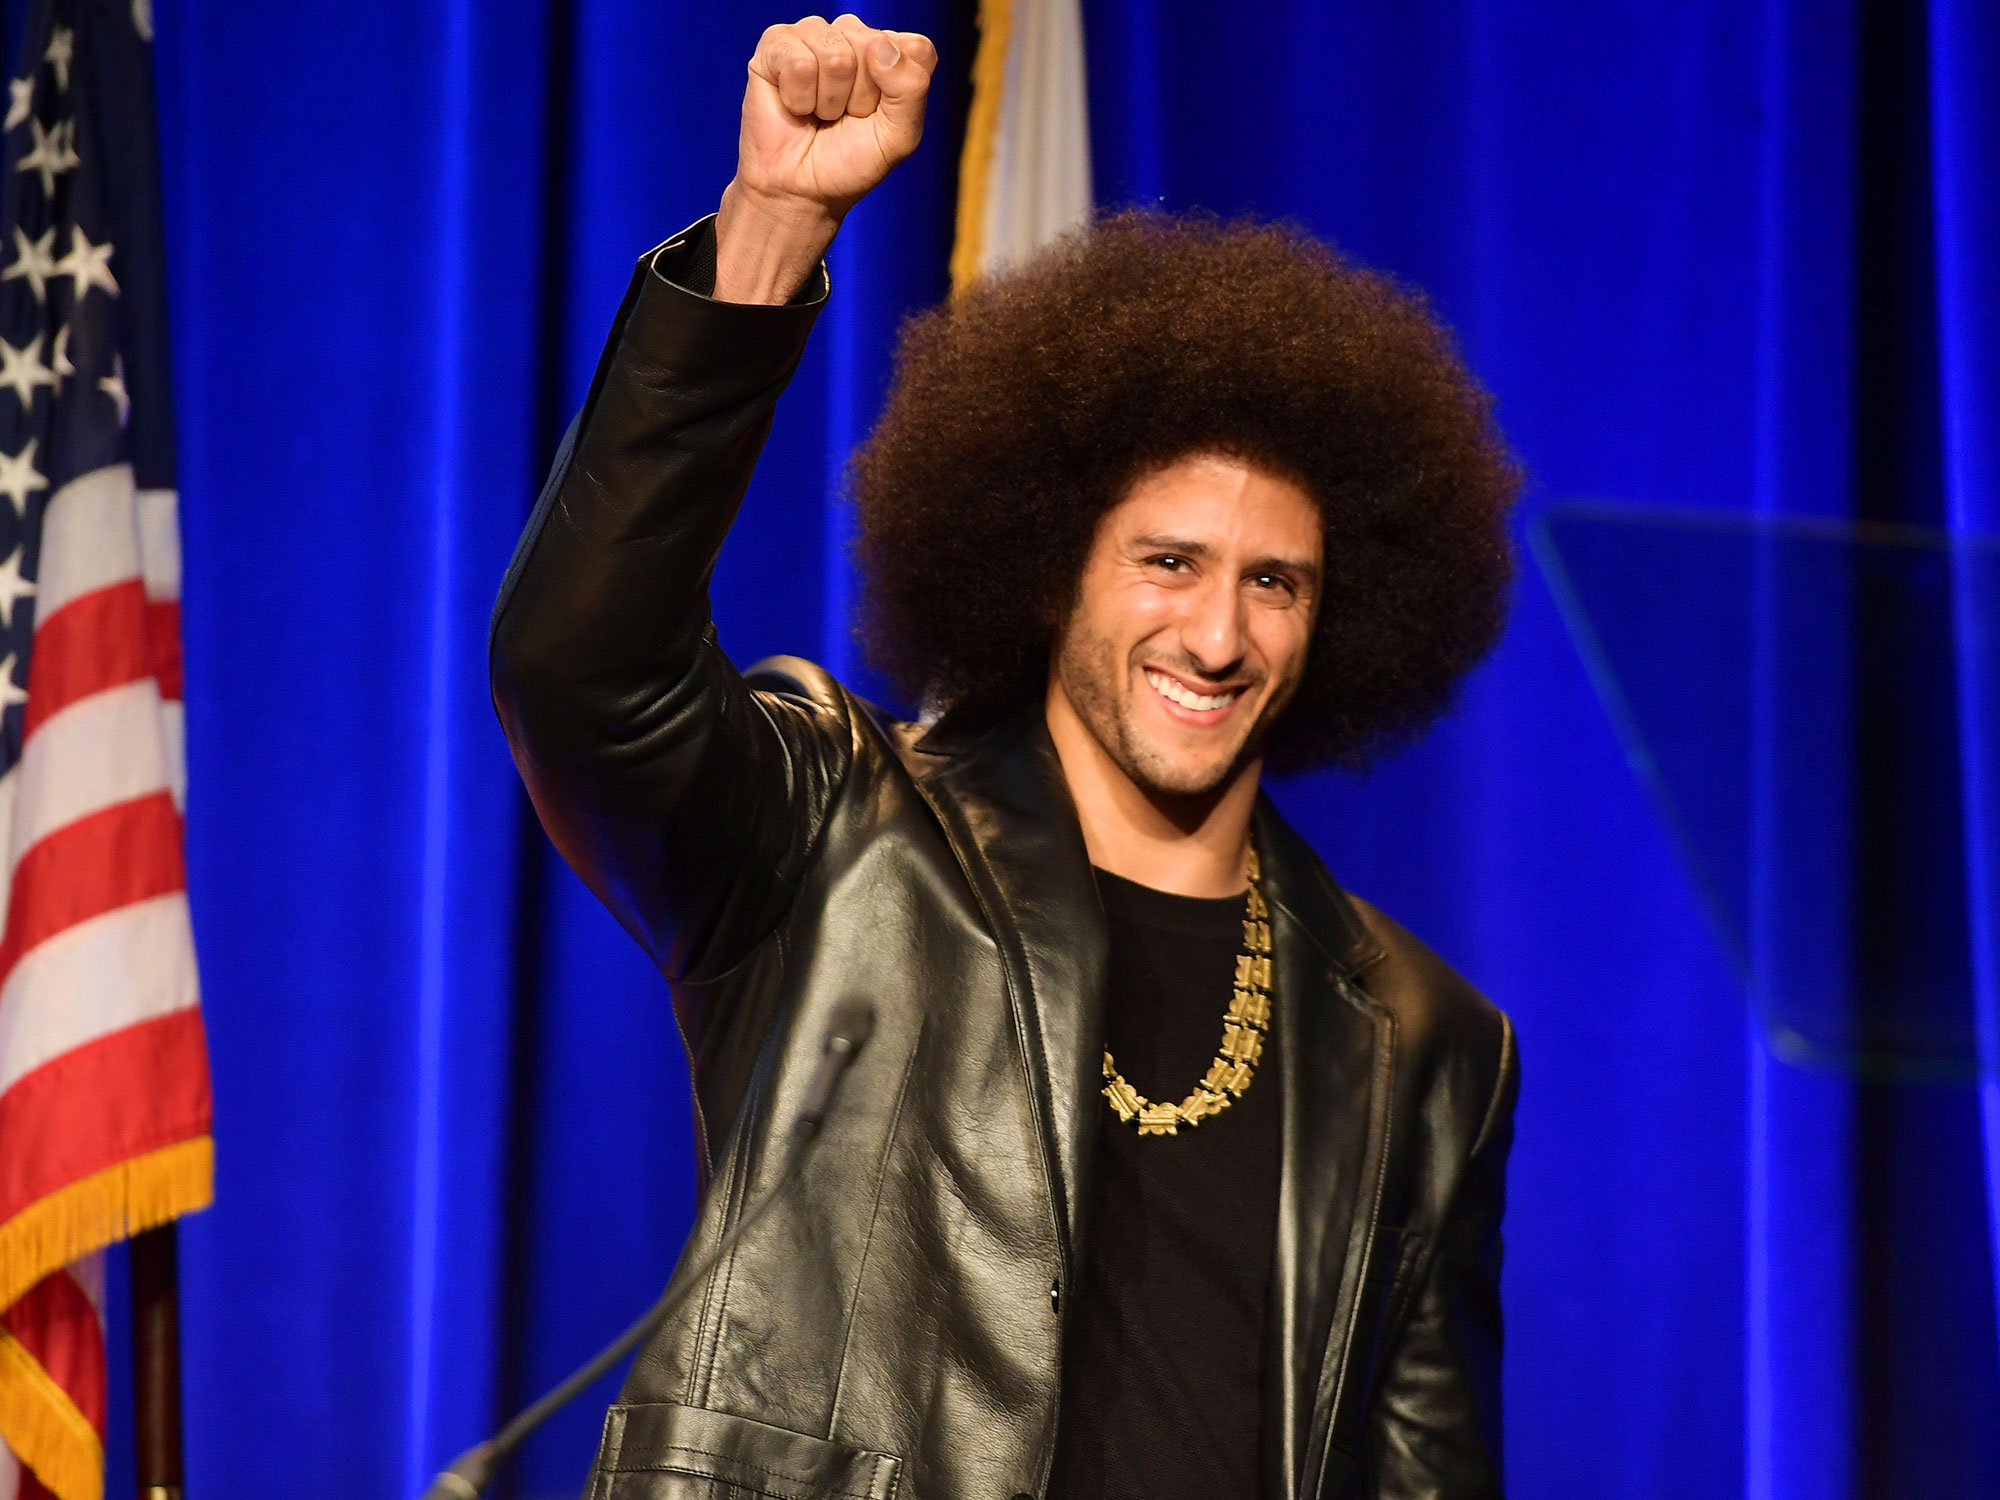 "The recipient of SI's 2017 Muhammad Ali Legacy Award and one of the first NFL players to protest the national anthem, Kaepernick has devoted both his energy and his money to the causes he cares about. In '16, took the Million Dollar Pledge, a promise to donate $1 million to organizations dedicated to serving ""oppressed"" people and communities. He's continued to donate in increments to different organizations, ranging from Home2Heart, which helps provide beds and furniture to single mothers in Atlanta, to Coalition for the Homeless in New York. His website indicates that he has donated $900K of that $1M pledge so ar."